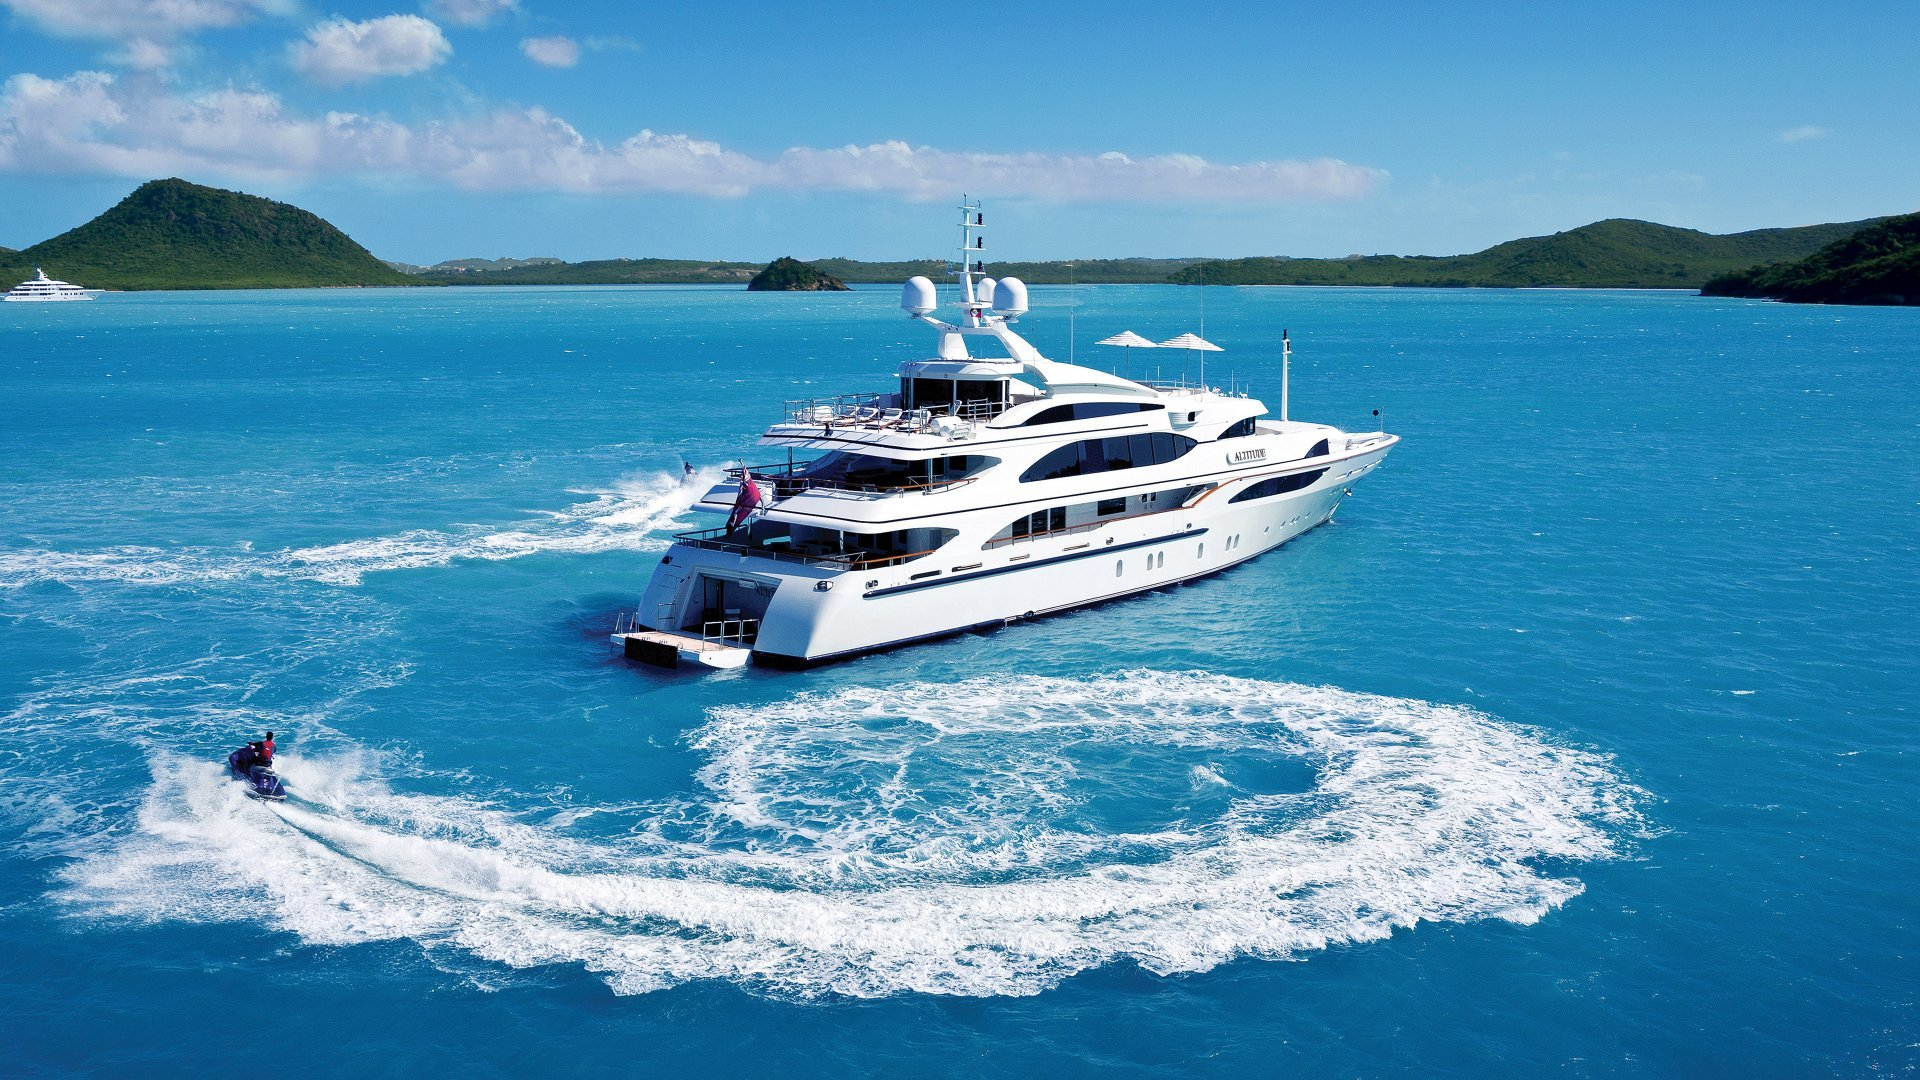 Boat rental - Nude cruise in the most beautiful Caribbean